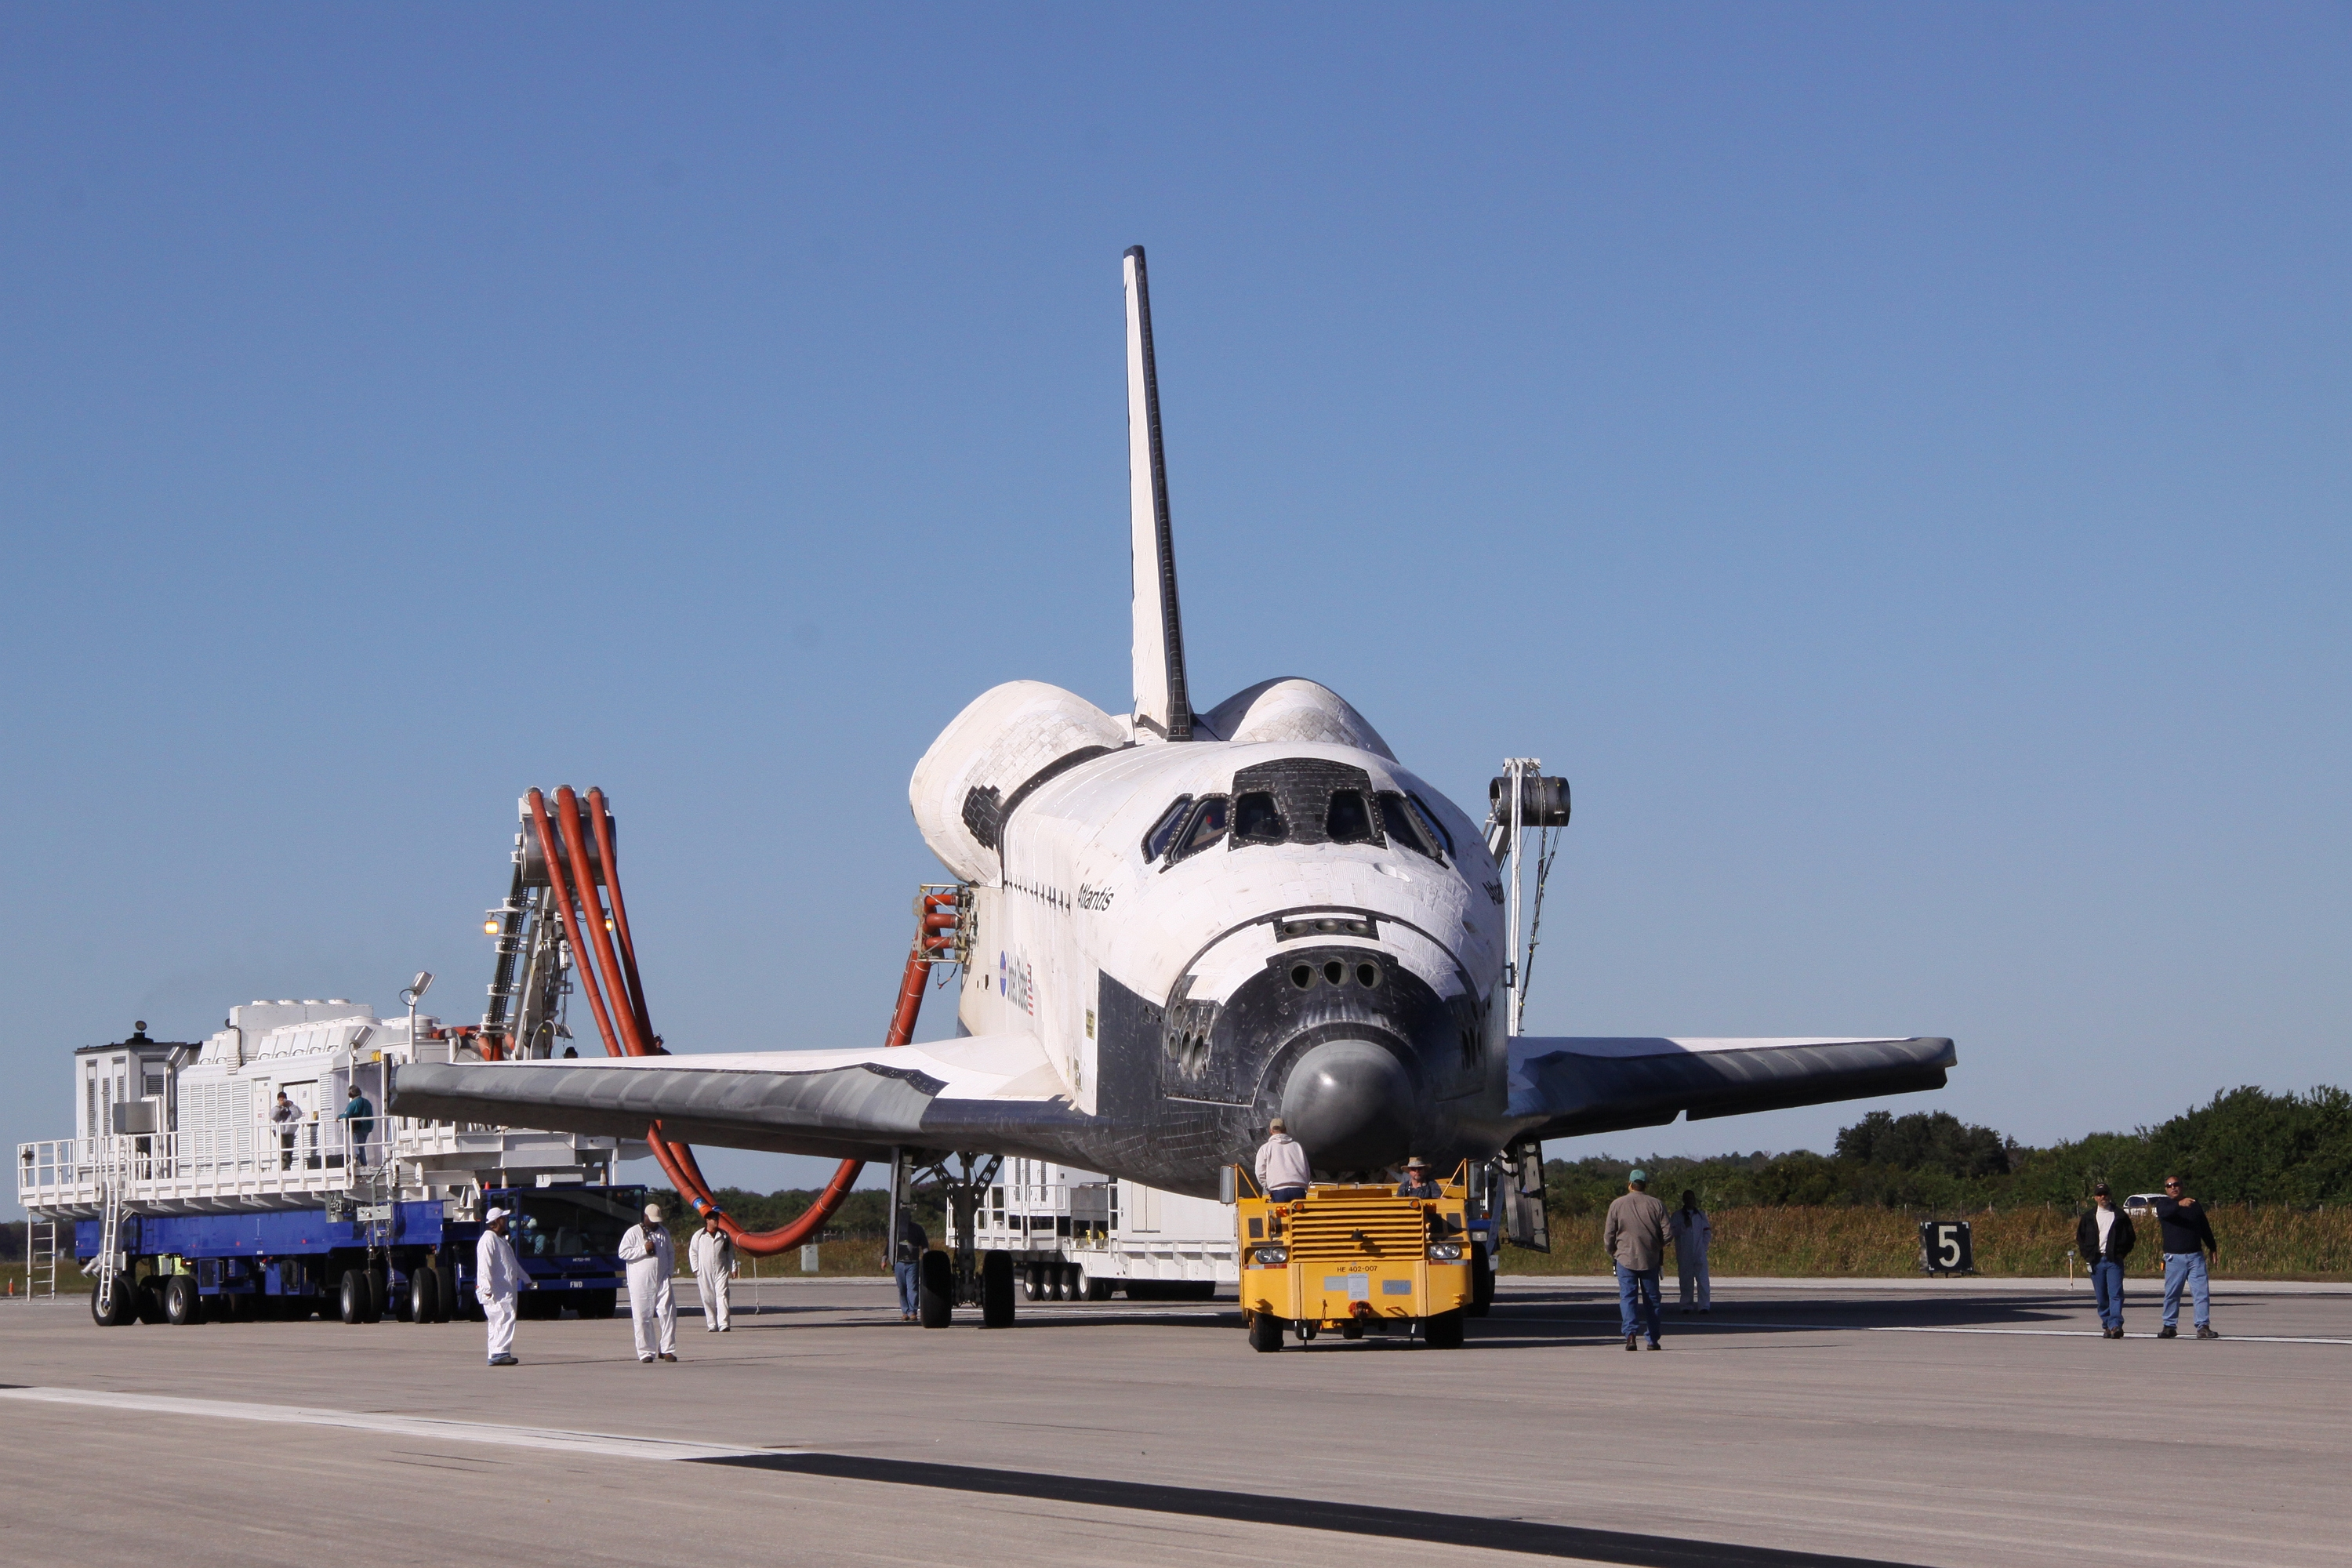 space shuttle kennedy - photo #22